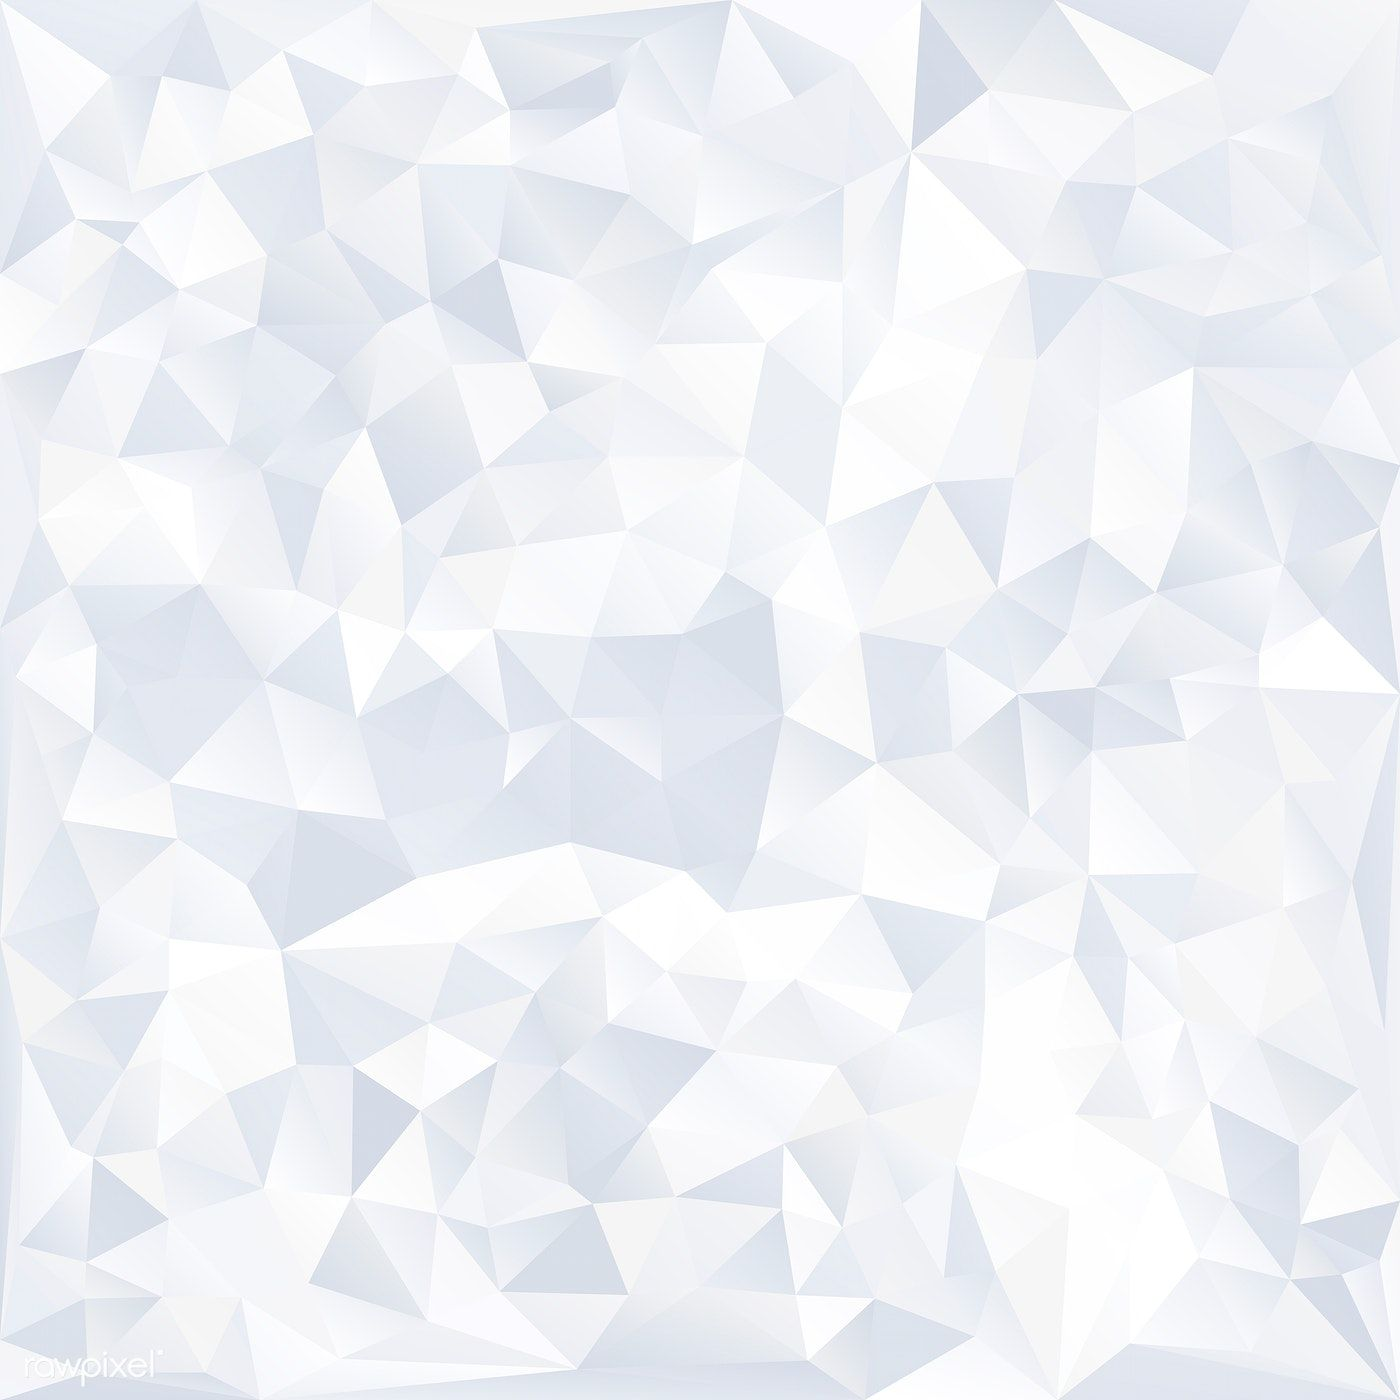 Gray And White Crystal Textured Background Free Image By Rawpixel Com Sasi Textured Background Crystal Texture Crystal Background